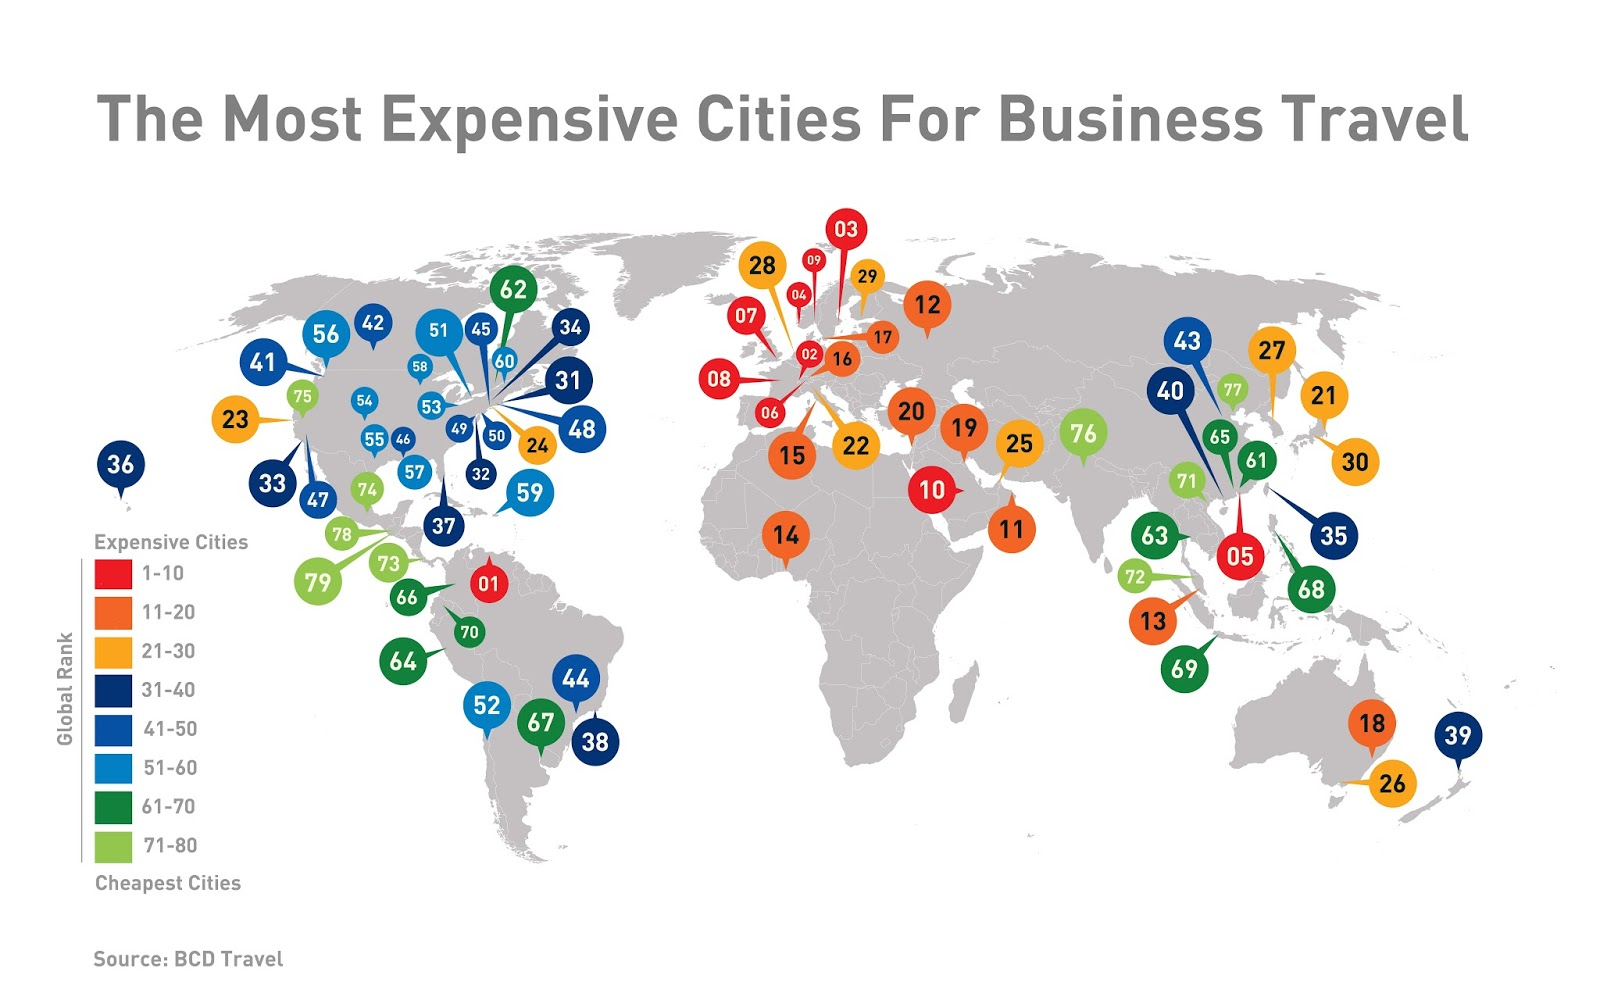 The most expensieve cities for business travel